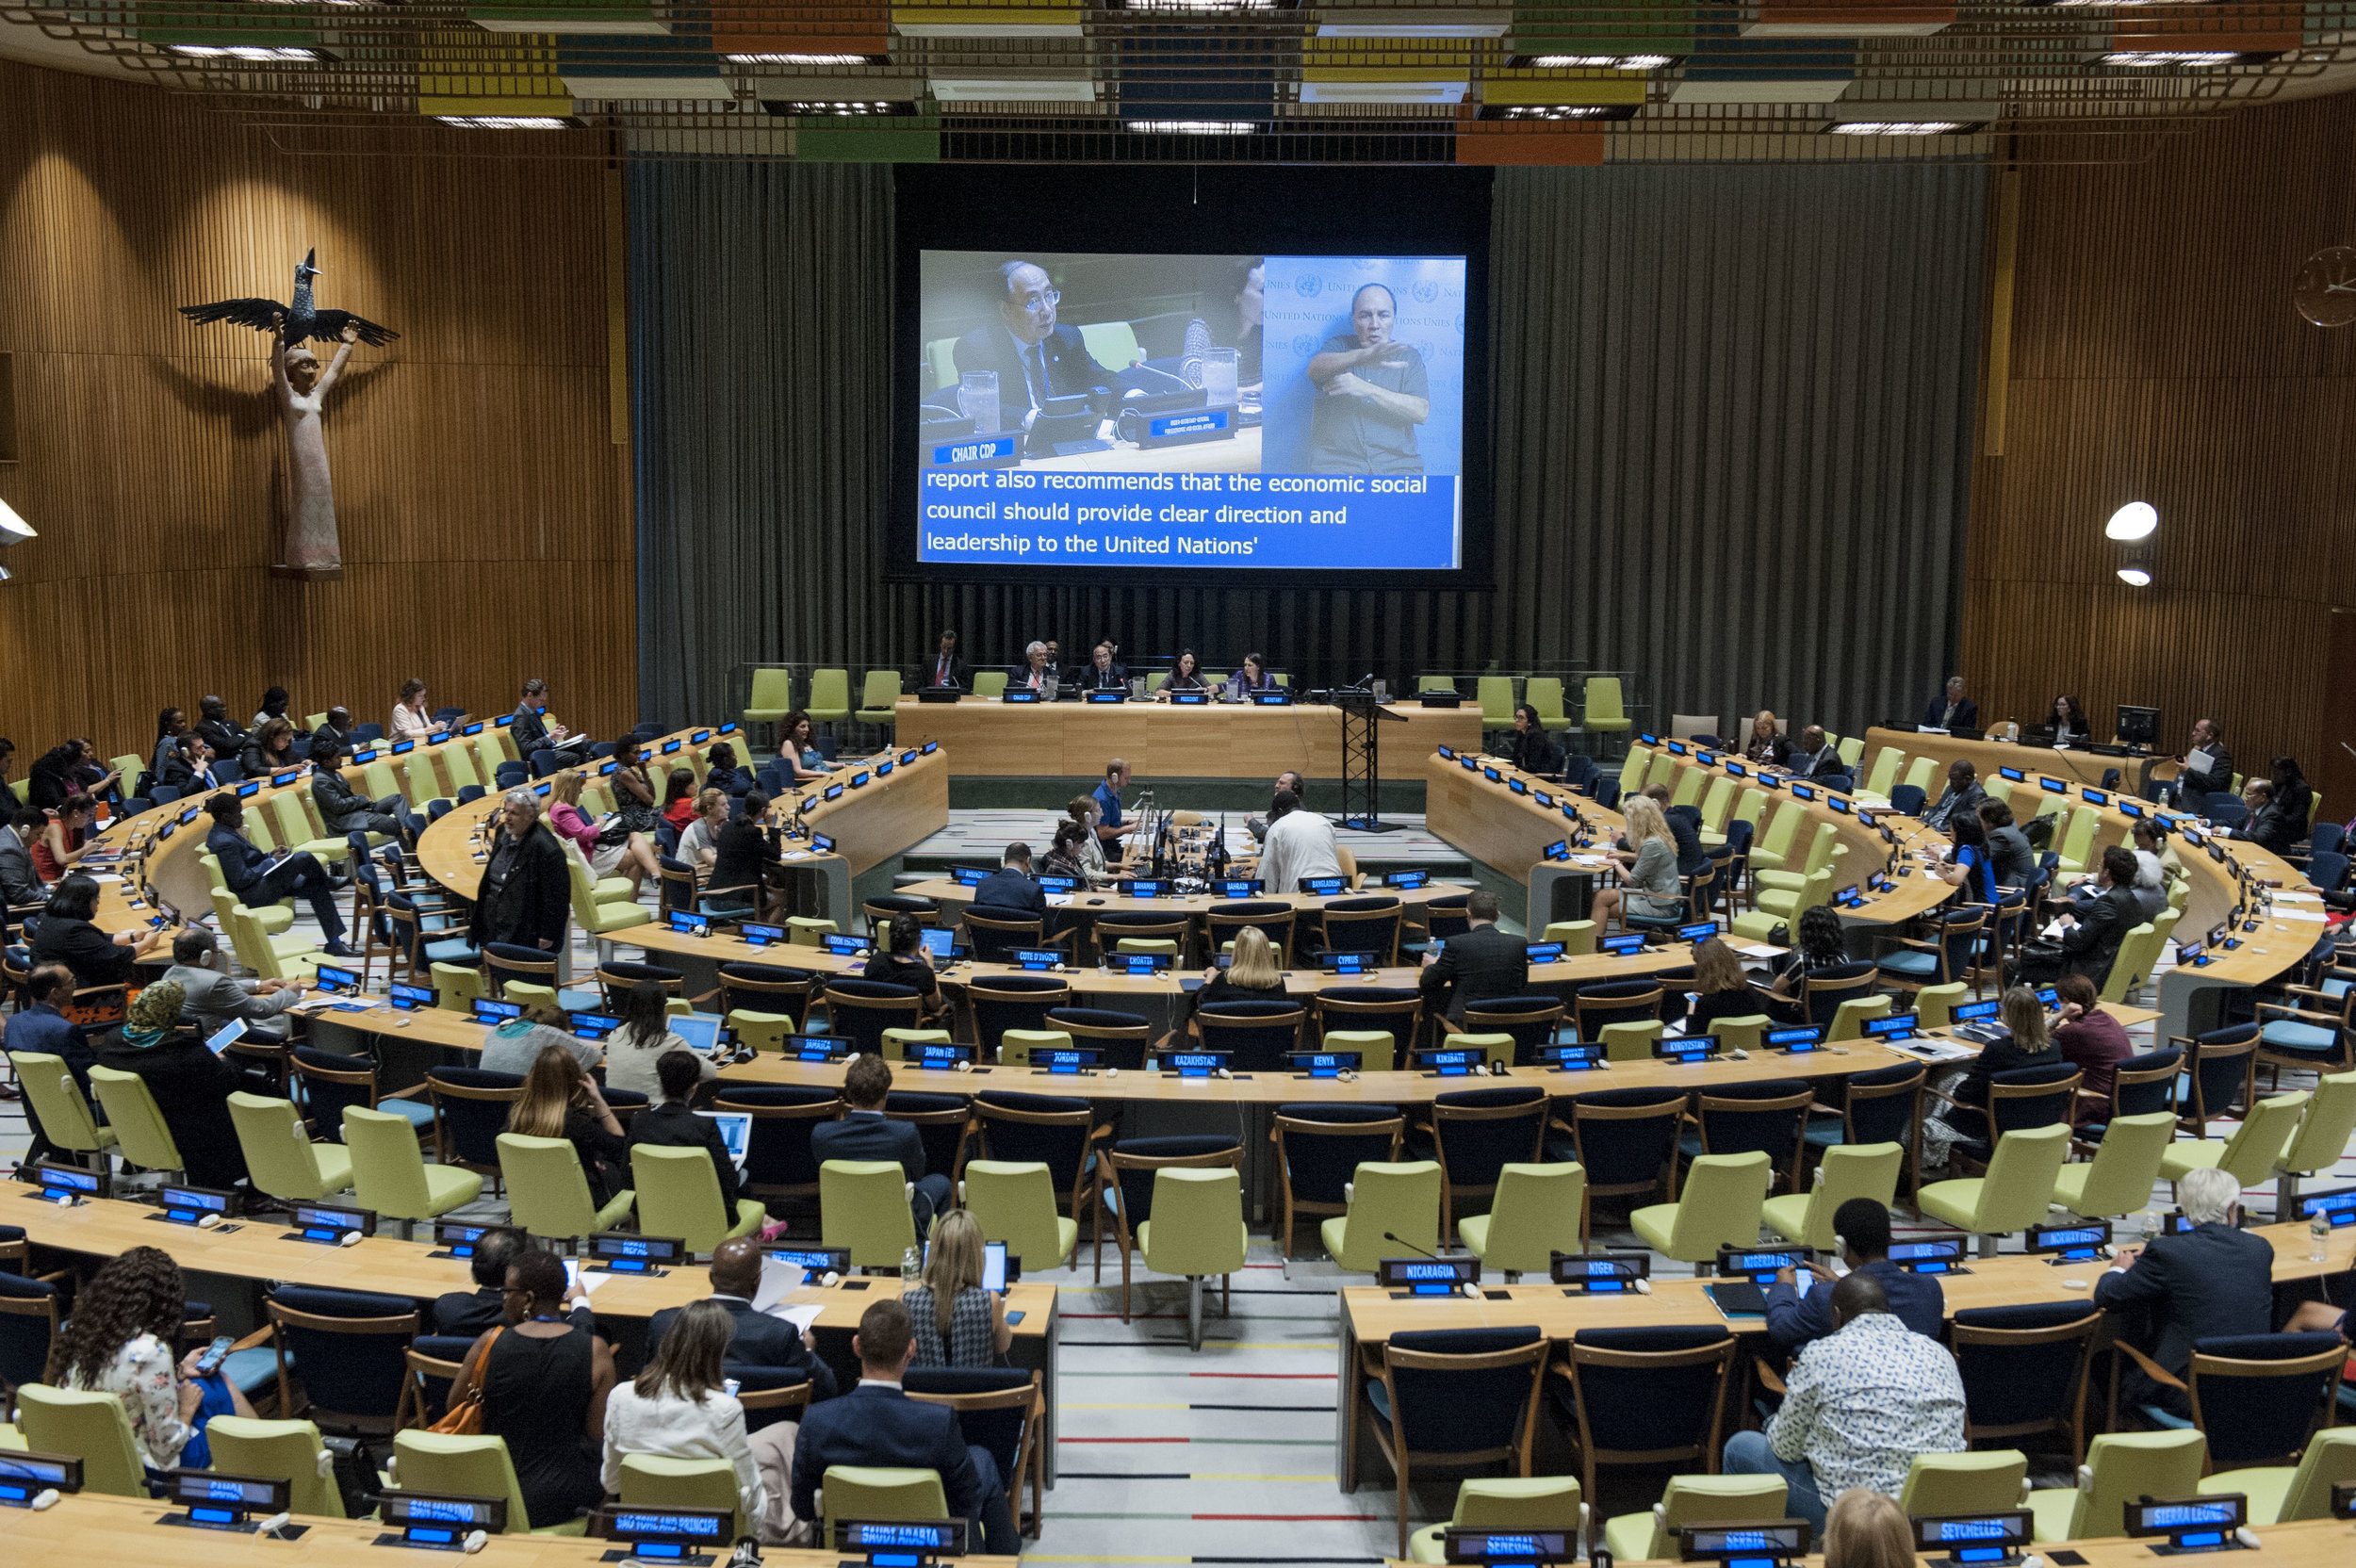 A wide view of a session of the three-day ministerial segment of the High-Level Political Forum on Sustainable Development, convened under the auspices of the Economic and Social Council (ECOSOC).  Photo courtesy of UN Photo.